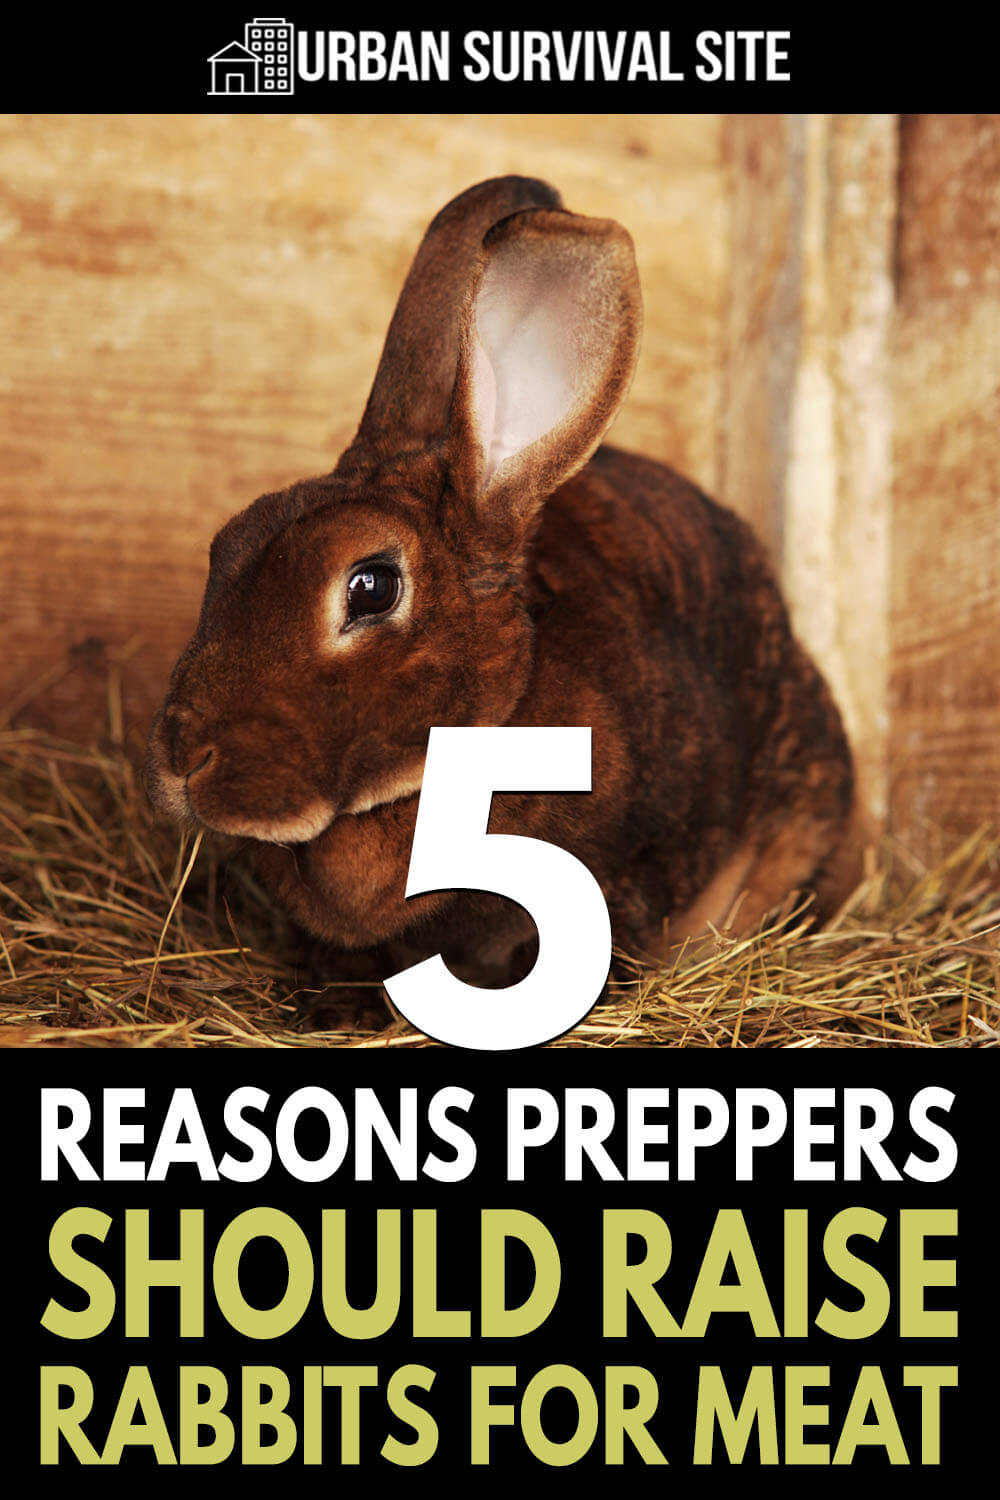 5 Reasons Preppers Should Raise Rabbits for Meat